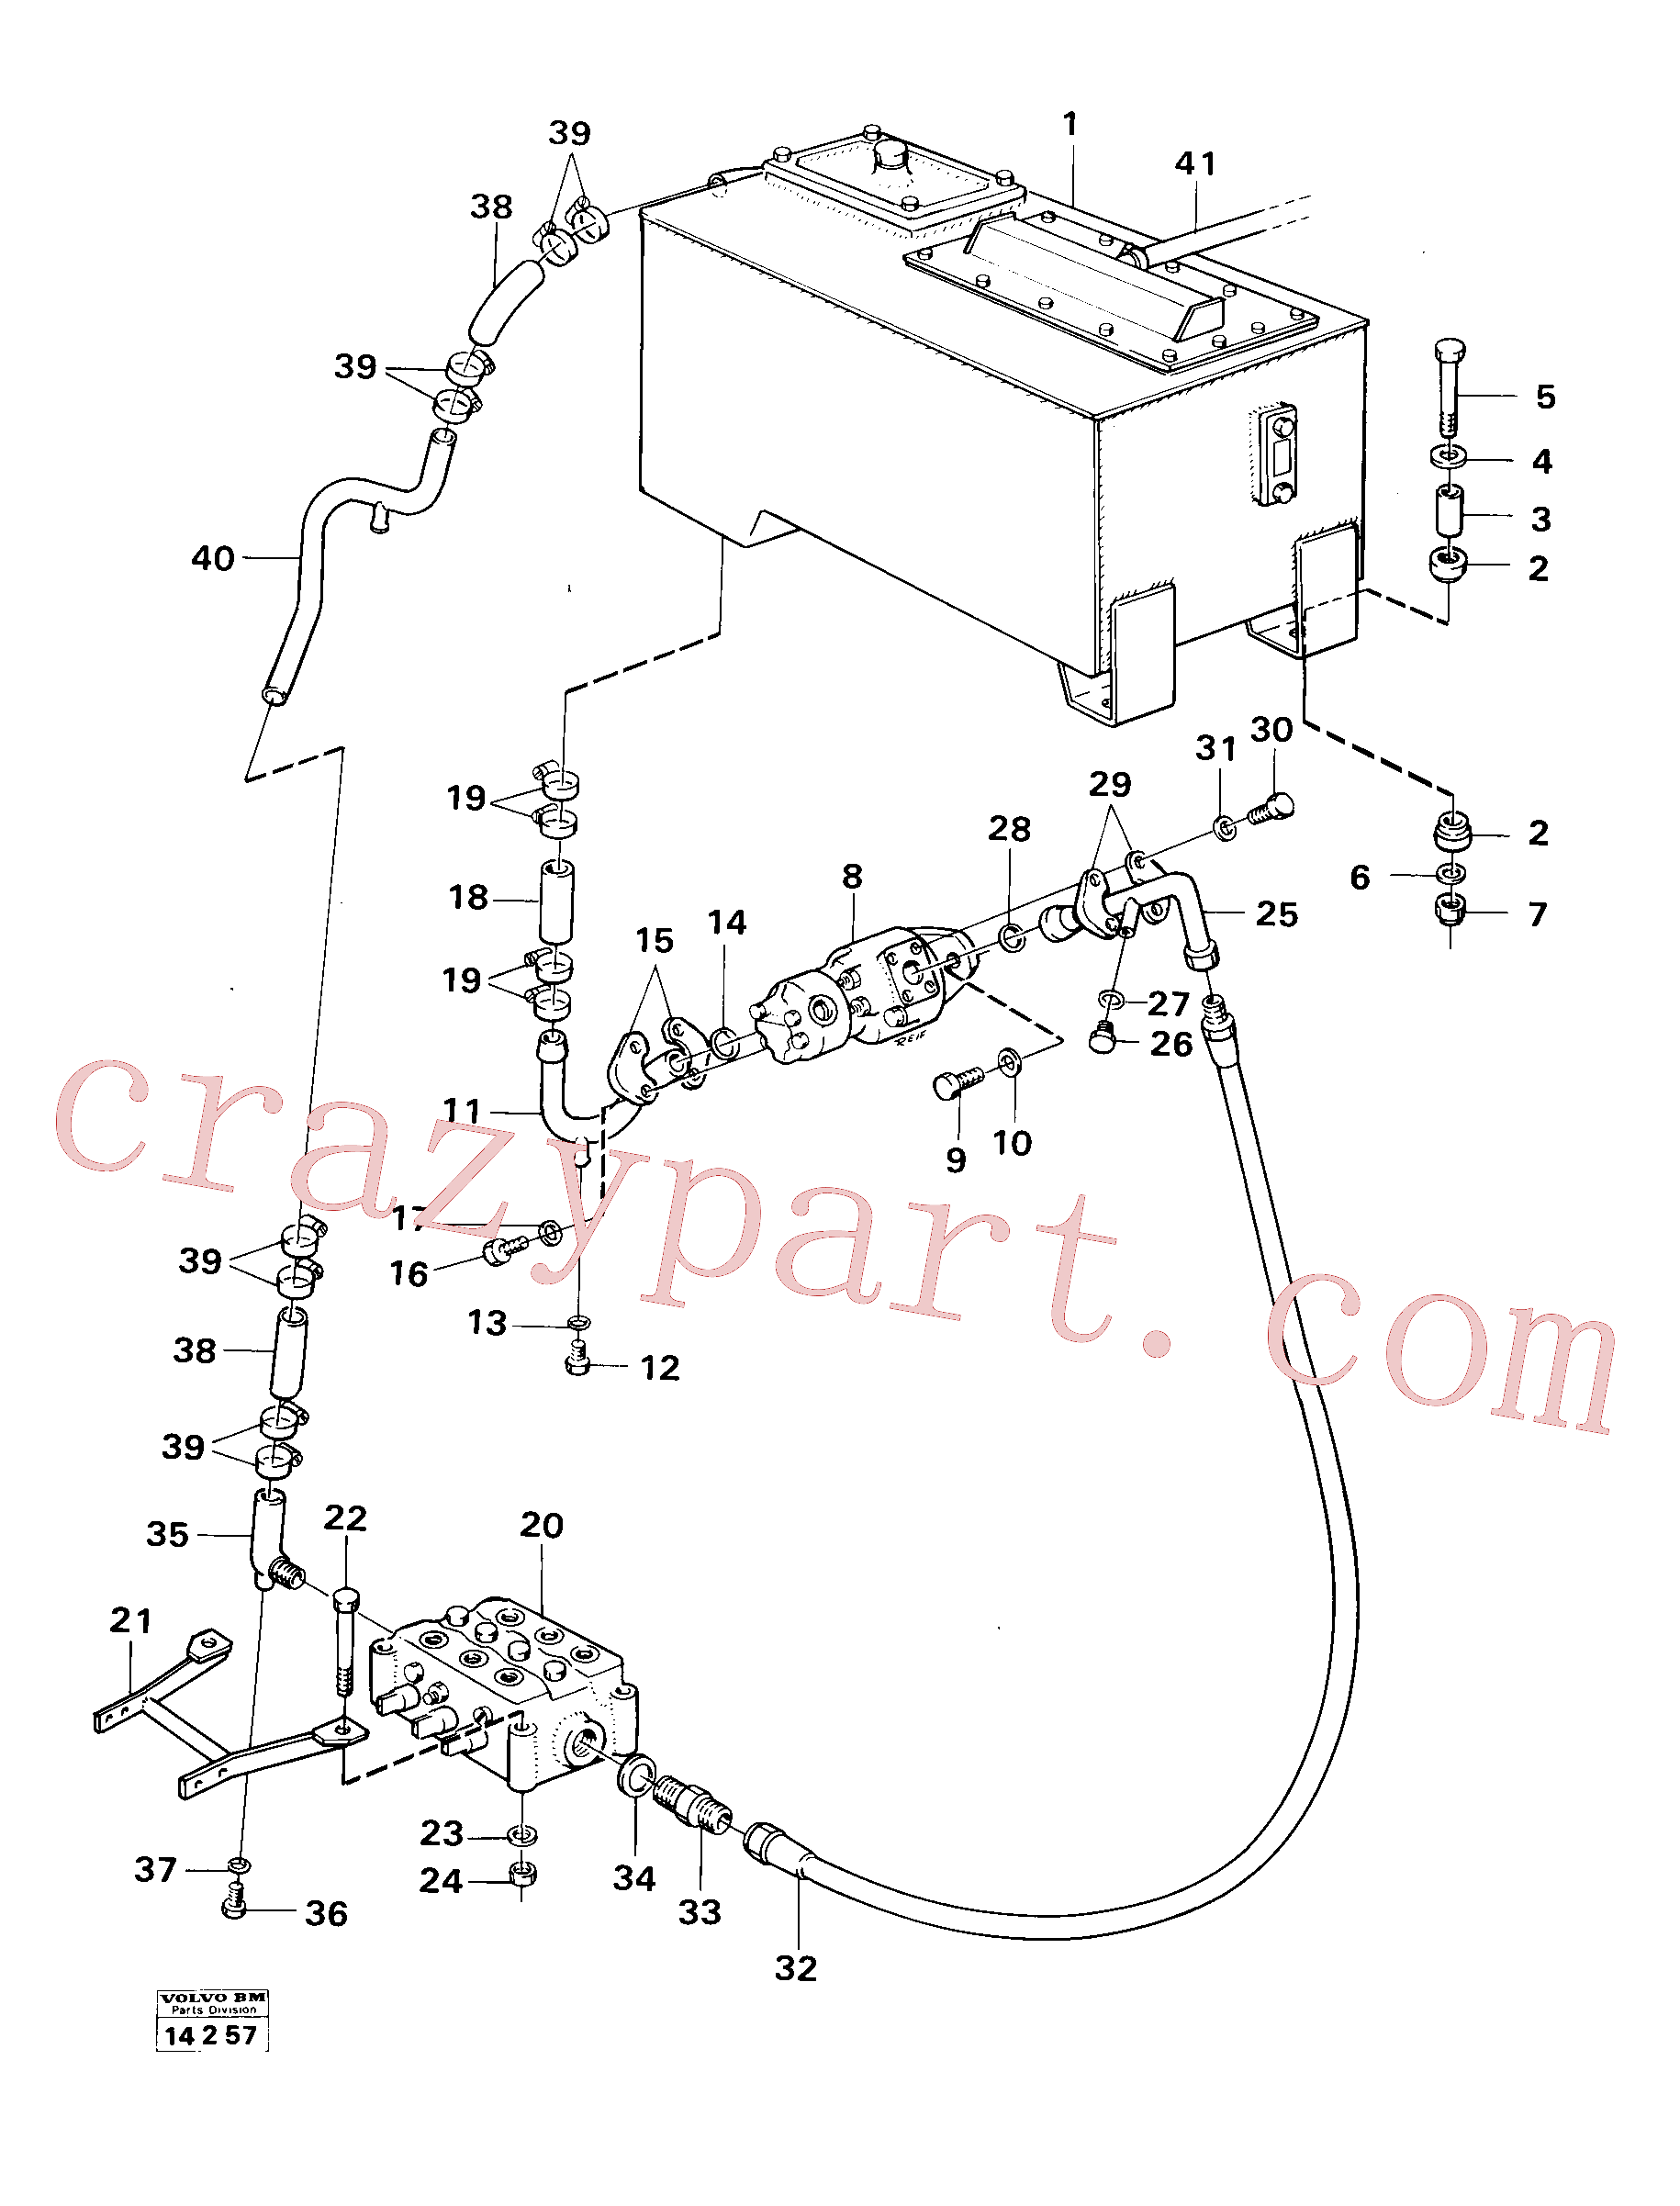 VOE13970984 for Volvo Feed lines(14257 assembly)